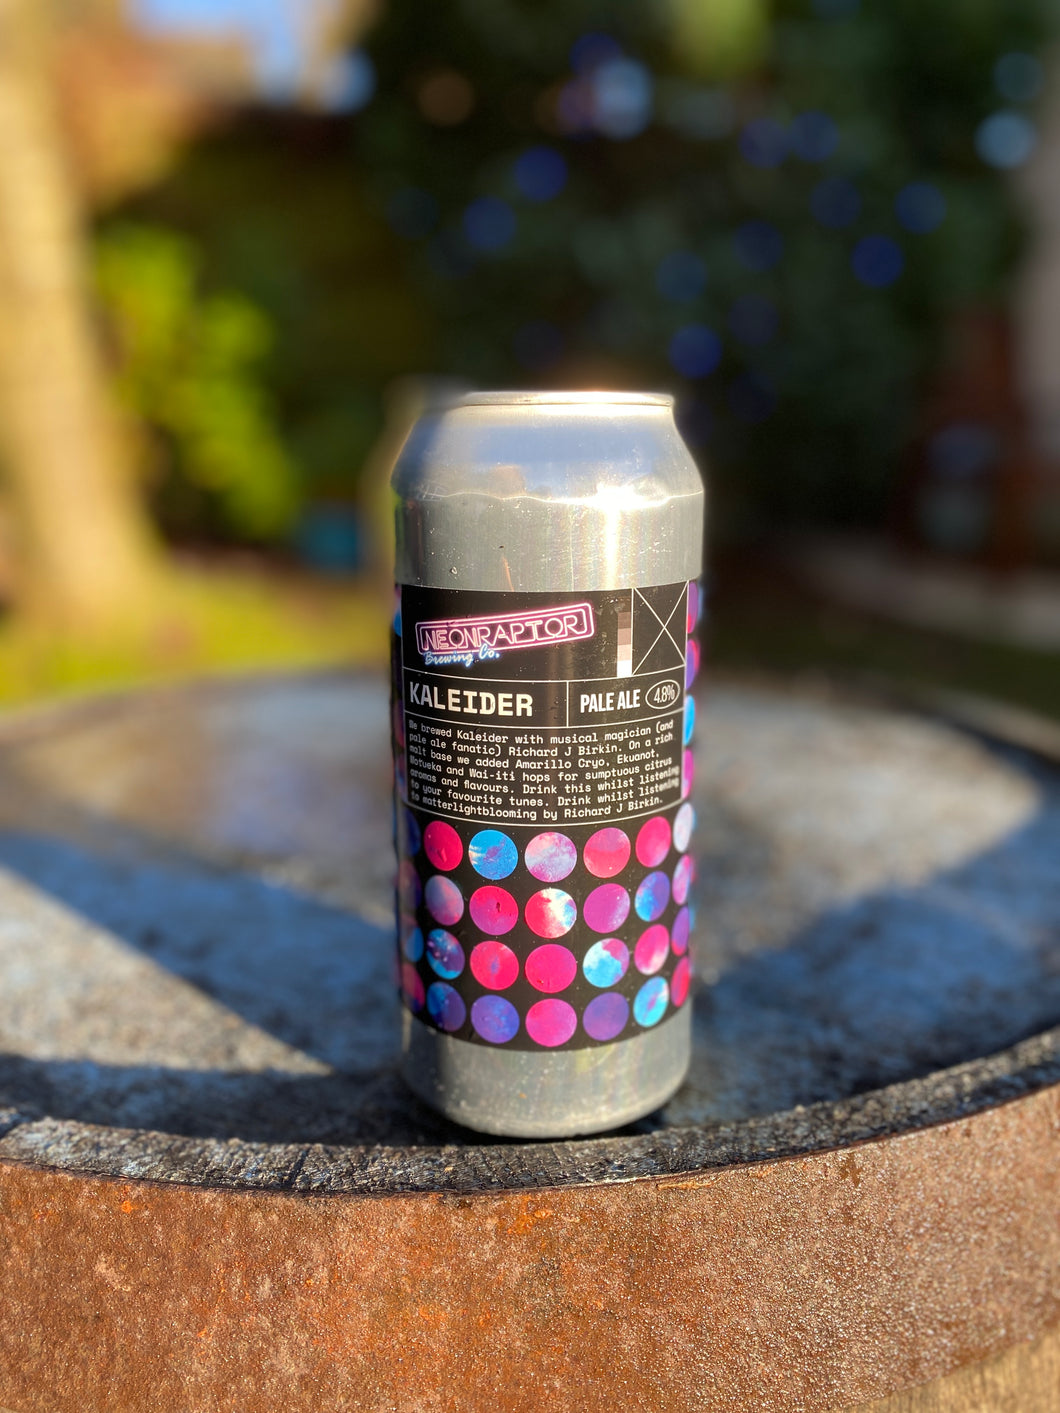 Neon Raptor - Kaleider - 4.8% Pale ale 440ml can